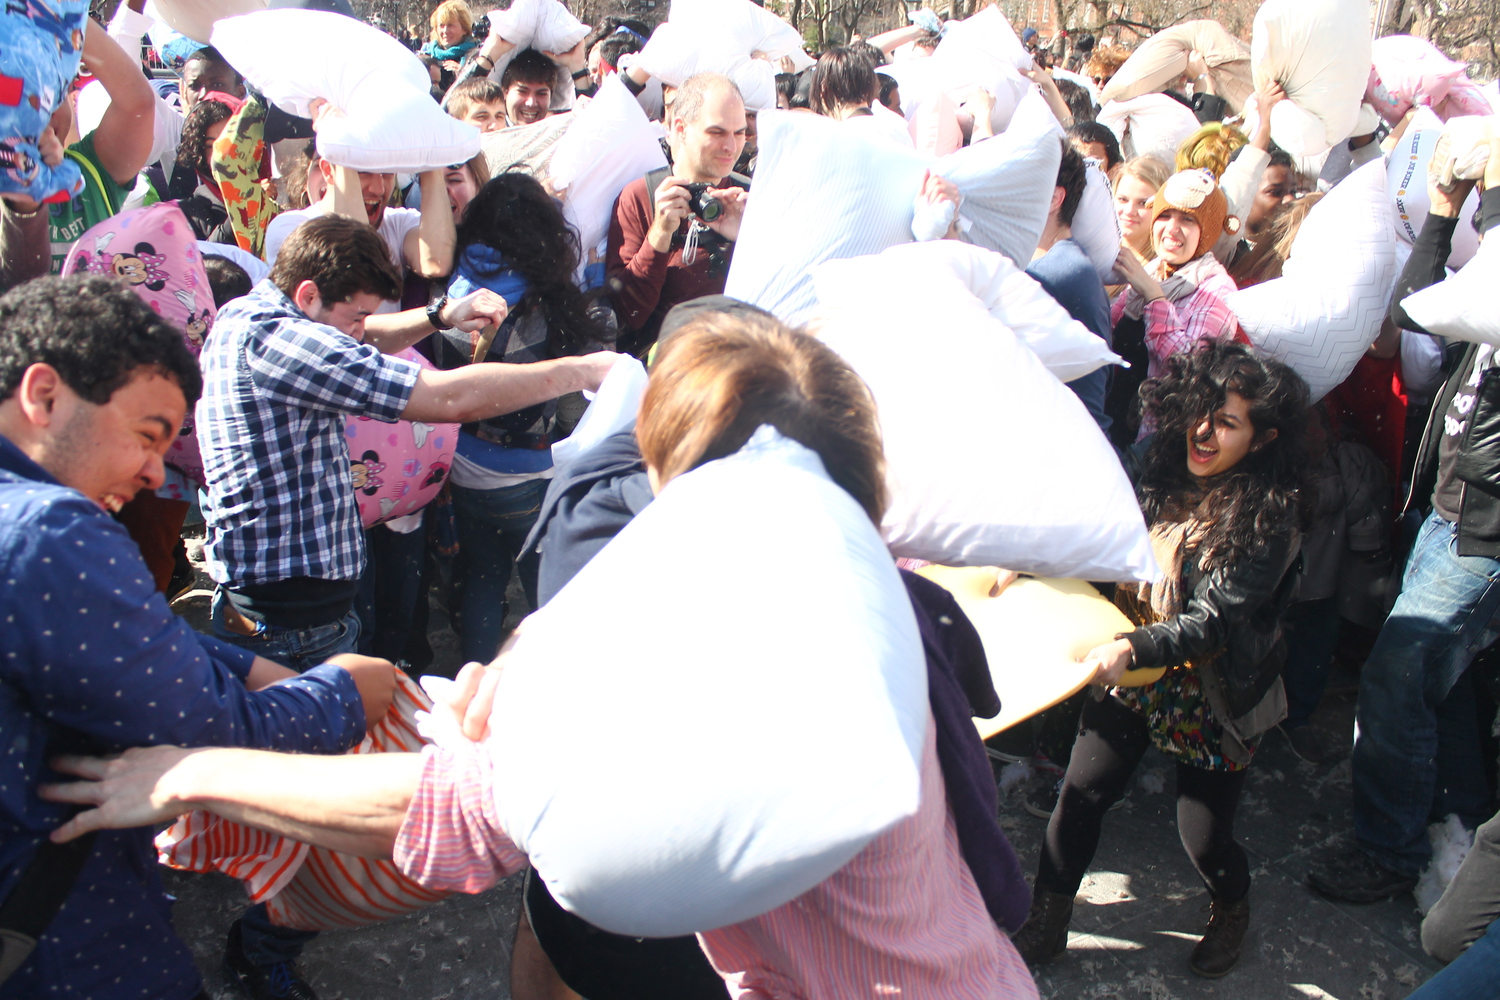 Pillow Warfare | Taken at the 2014 International Pillow Fight Day in Washington Square, New York City.